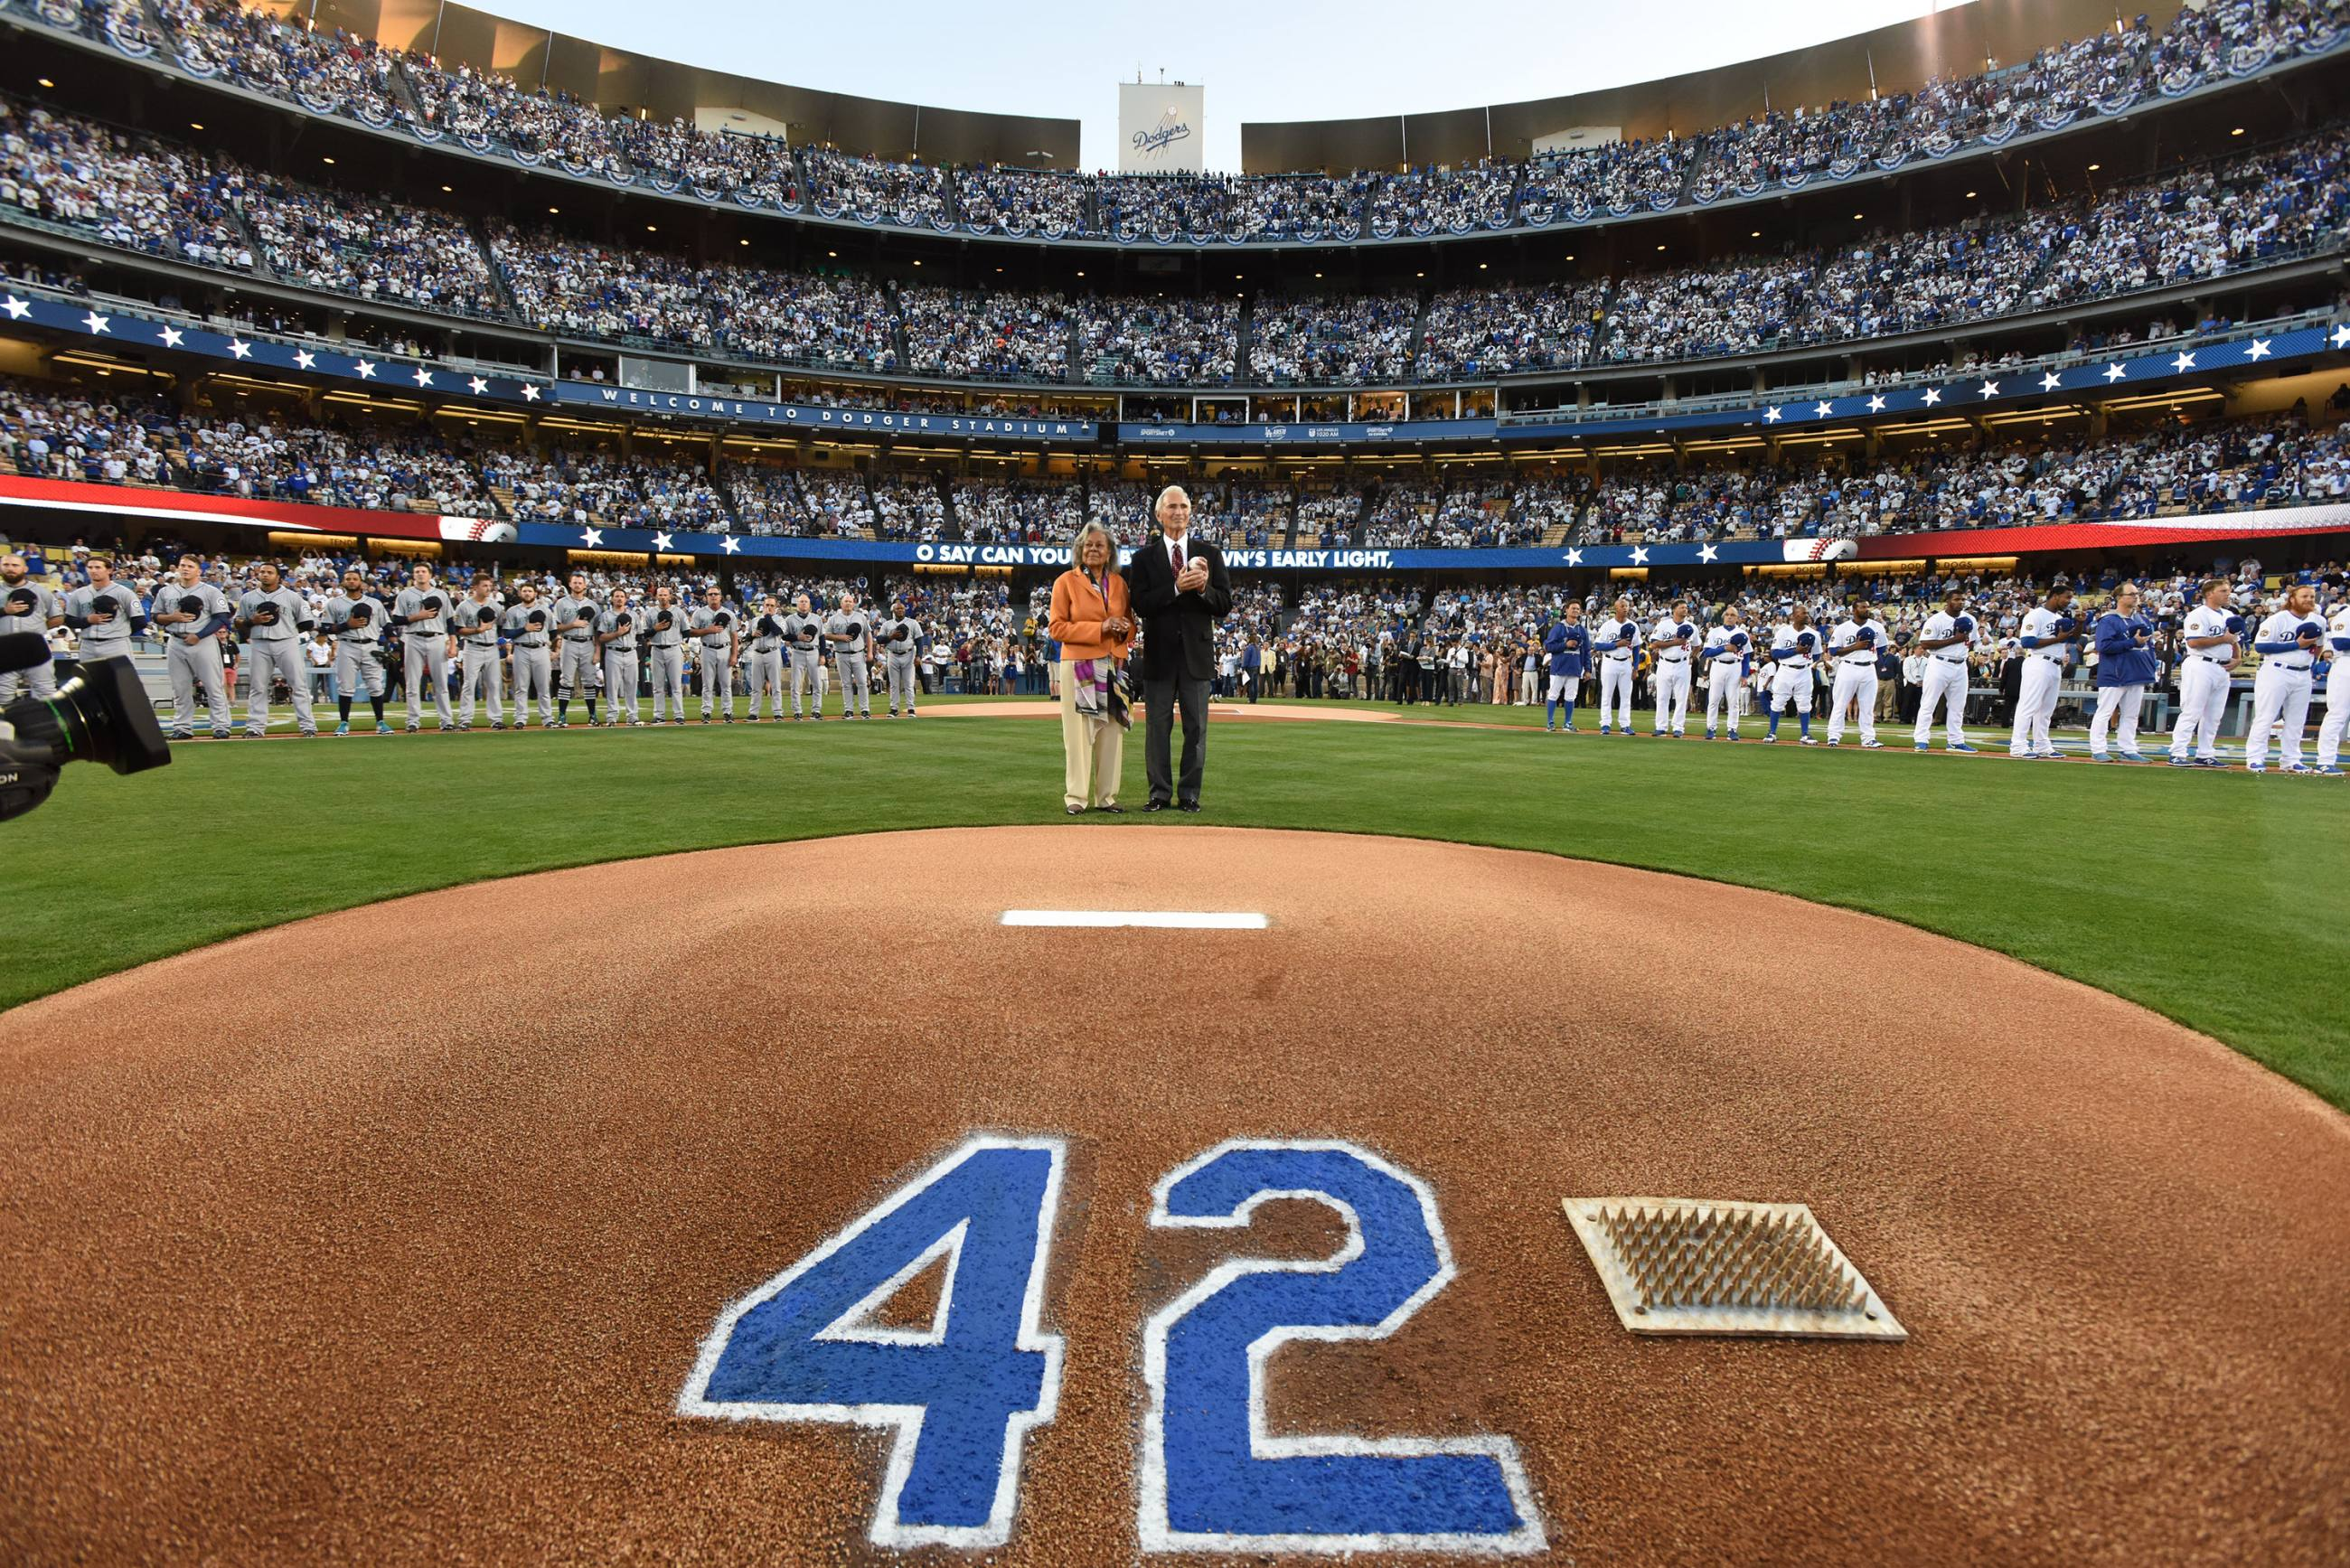 Jackie Robinson Day at Dodger Stadium in 2015